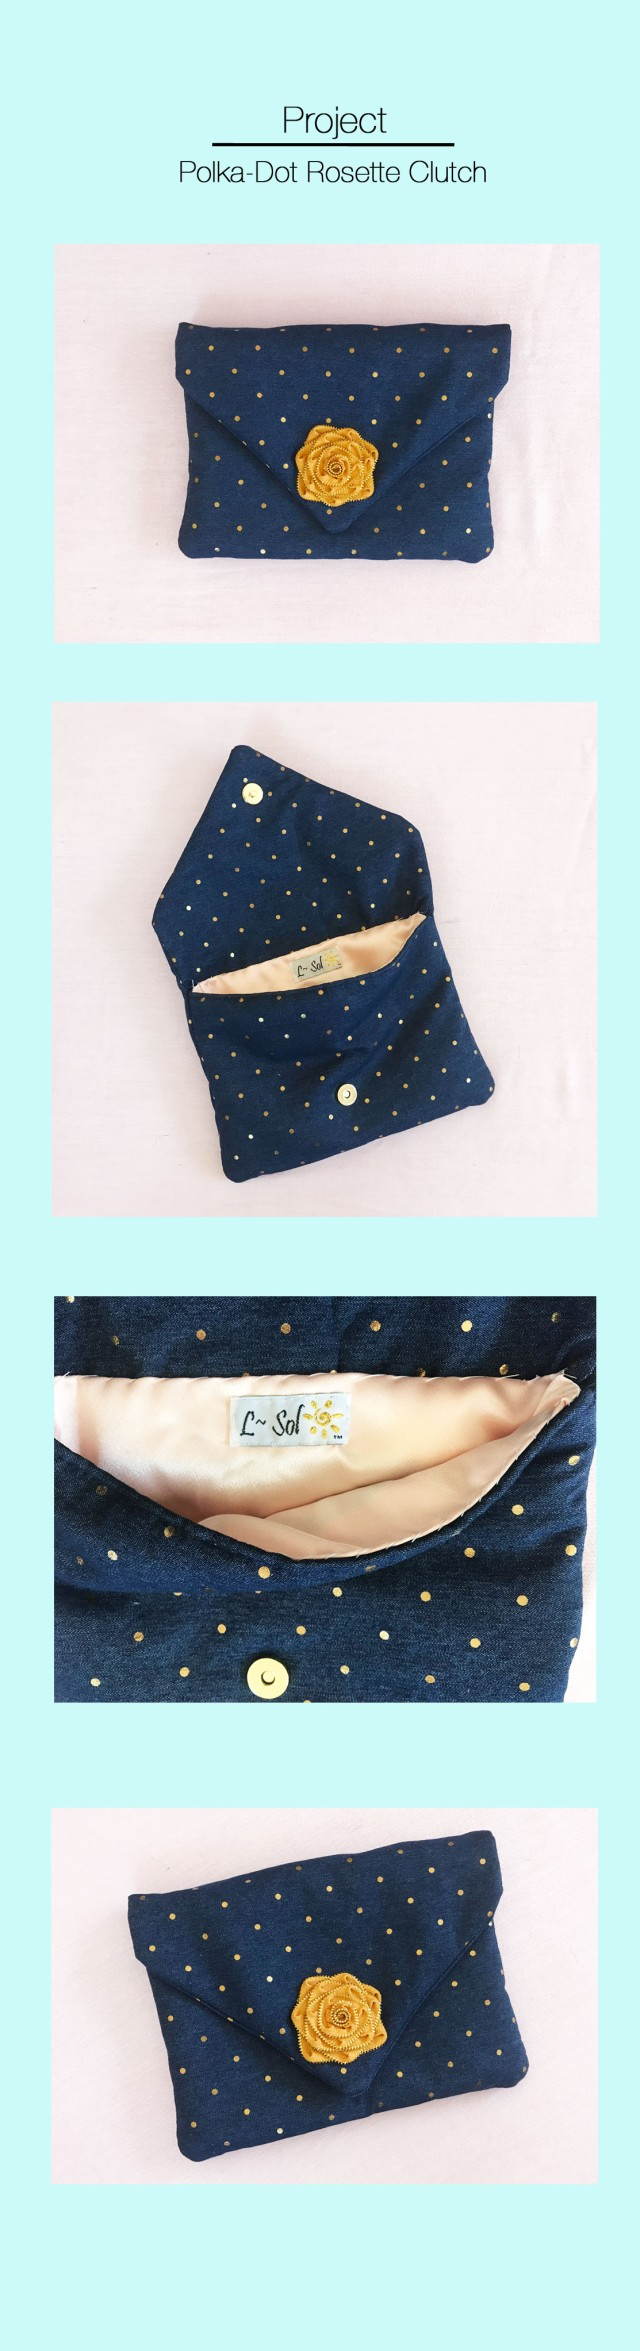 polka-dot-denim-clutch